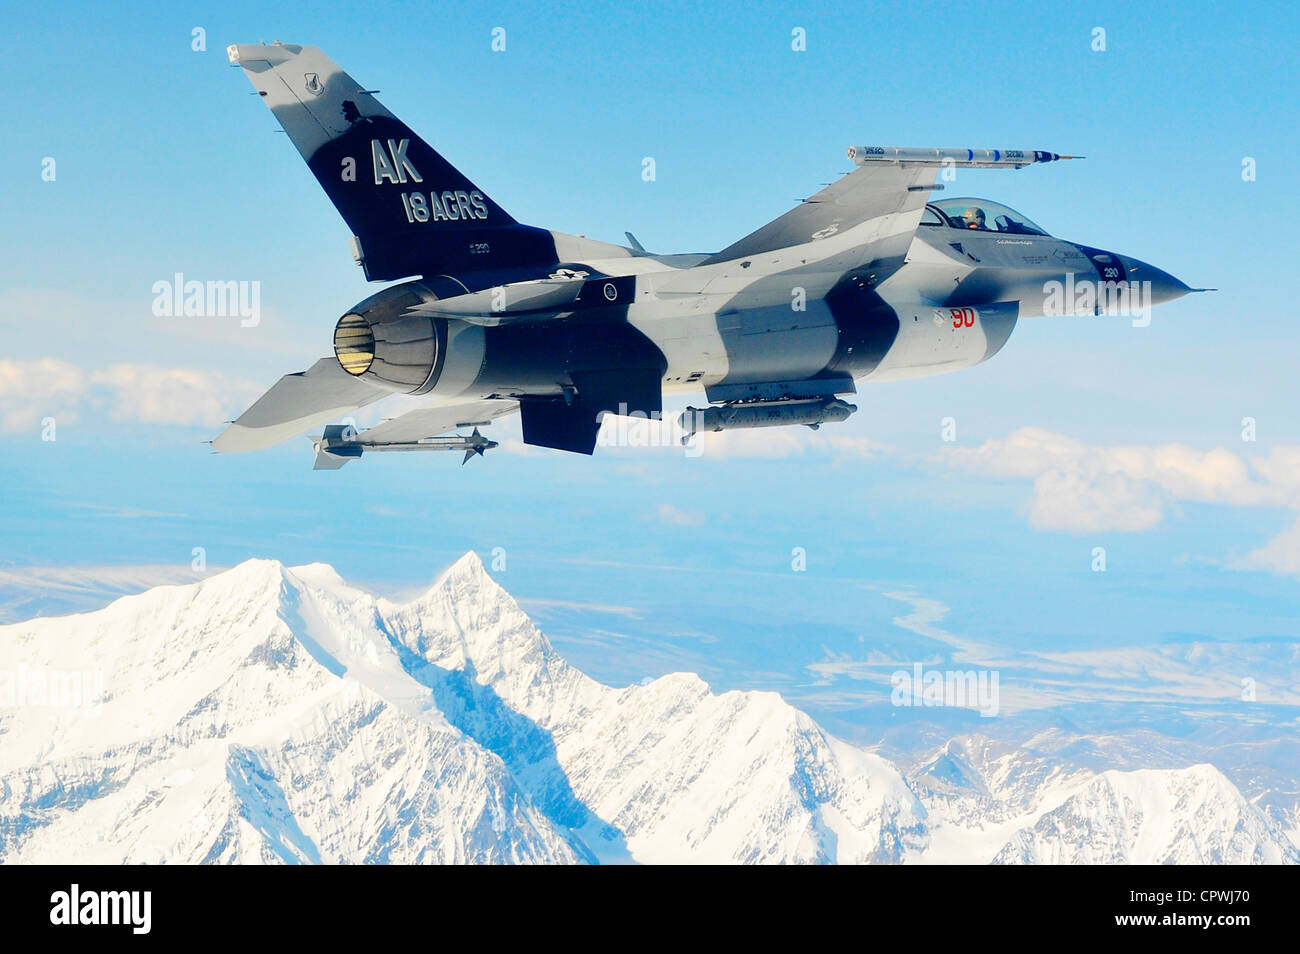 F-16 fighting falcon - Stock Image